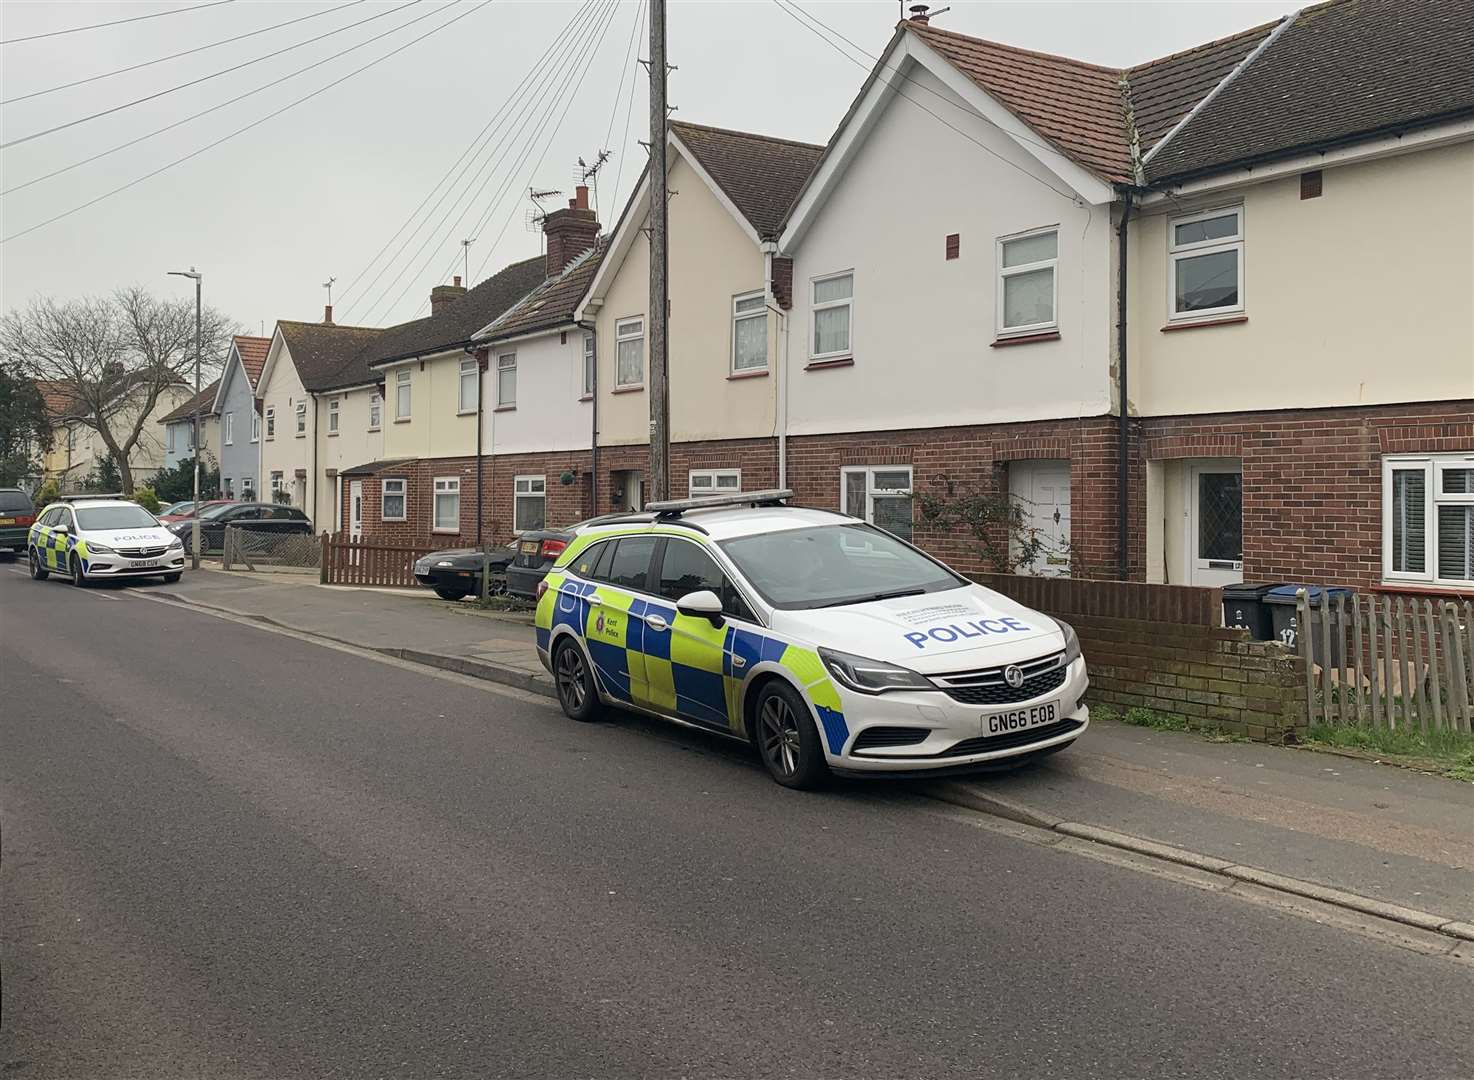 Police were at the scene in Mill Road, Deal and forensics investigators were reported to have attended